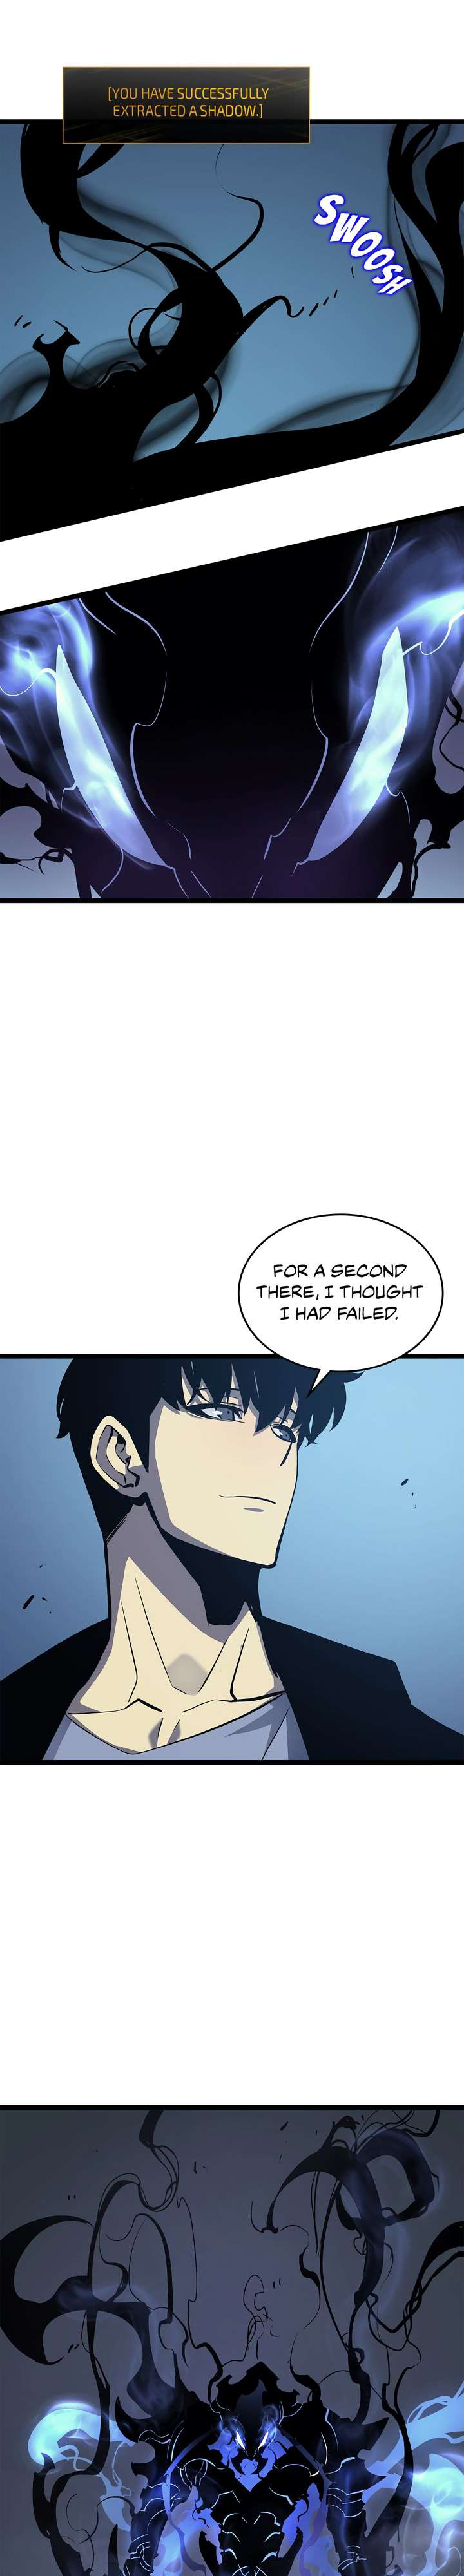 Solo Leveling Chapter 105 Page 36